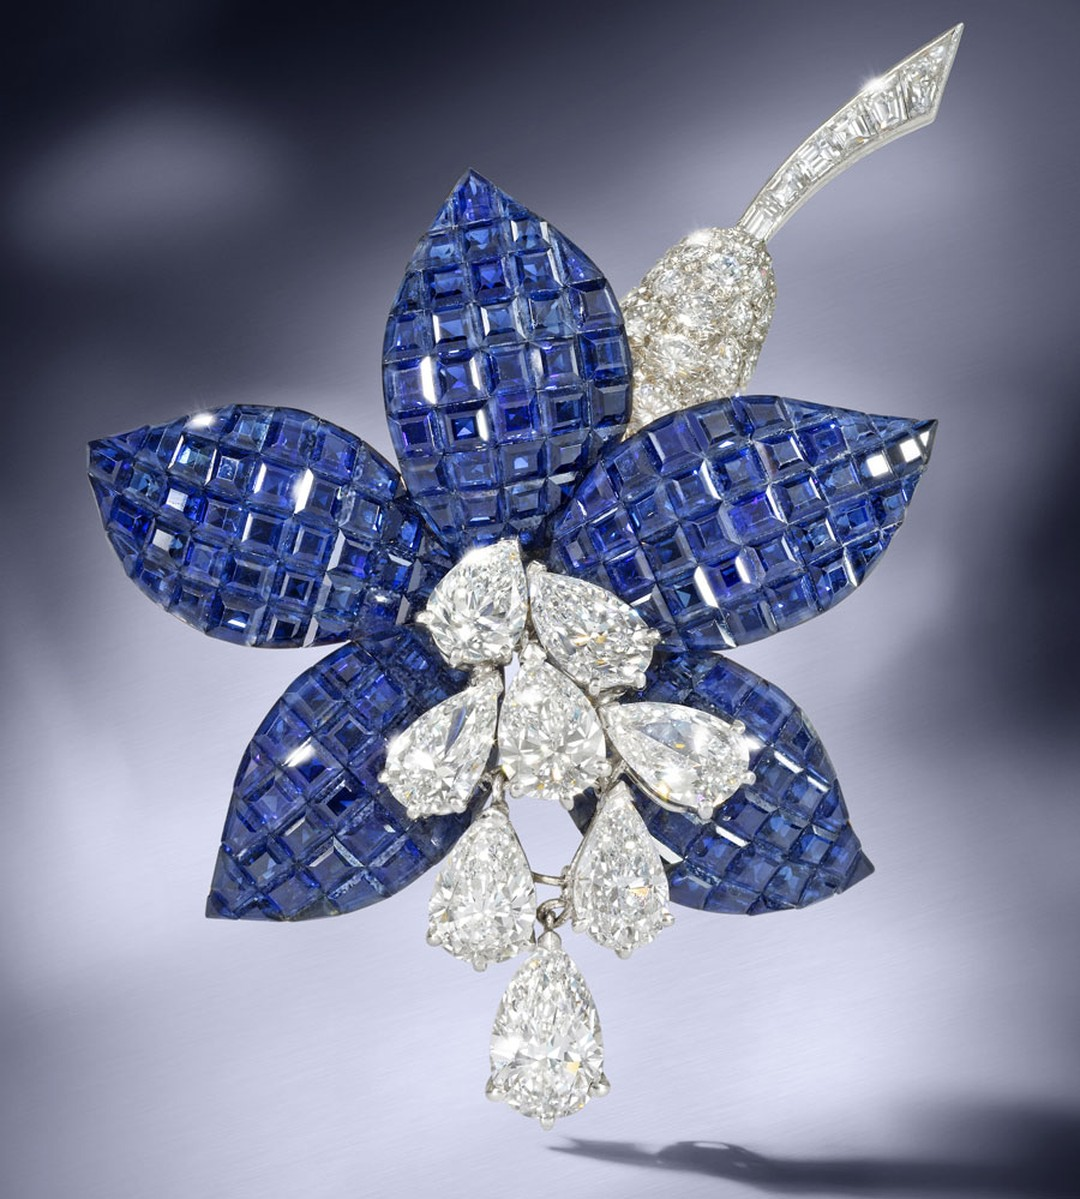 bonhams-sapphire-and-diamond-Fuschia-brooch-Van-Cleef-and-Arpels